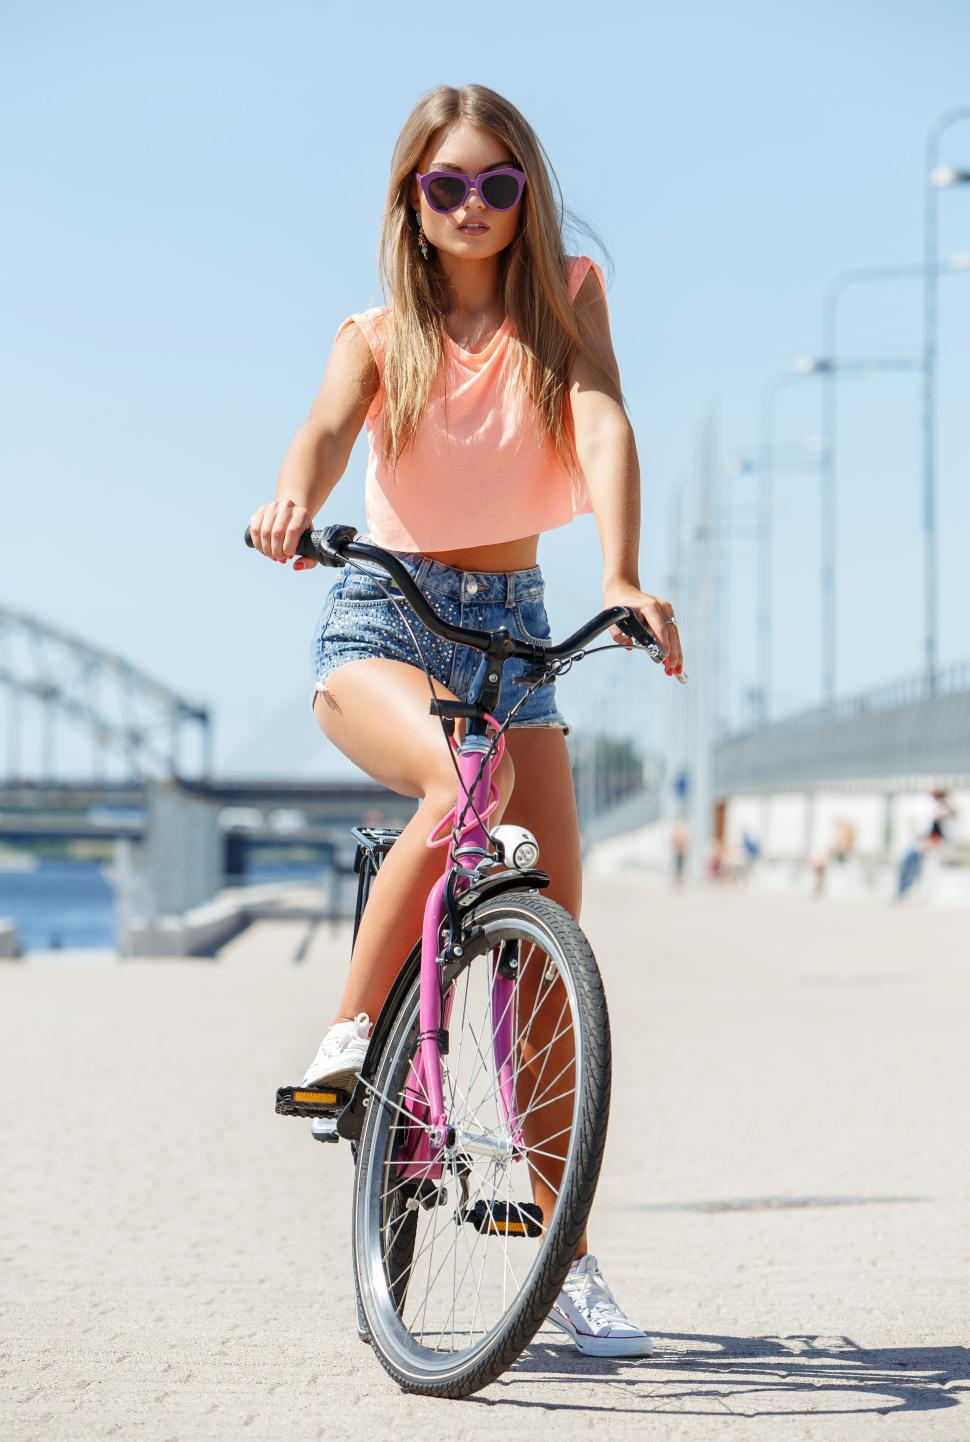 Download Free Stock Photo of Beautiful girl on a bike near the shore